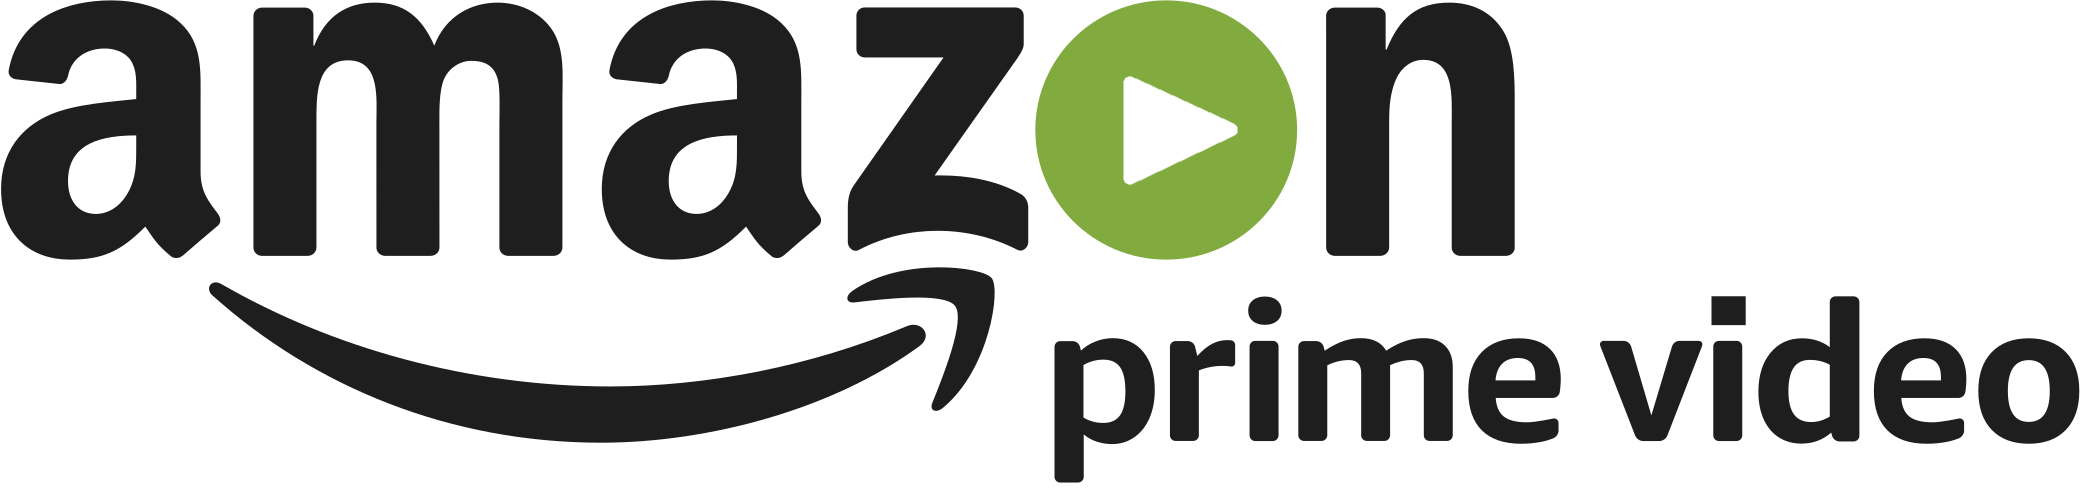 amazon prime video logo 1 - Amazon Prime Video Logo